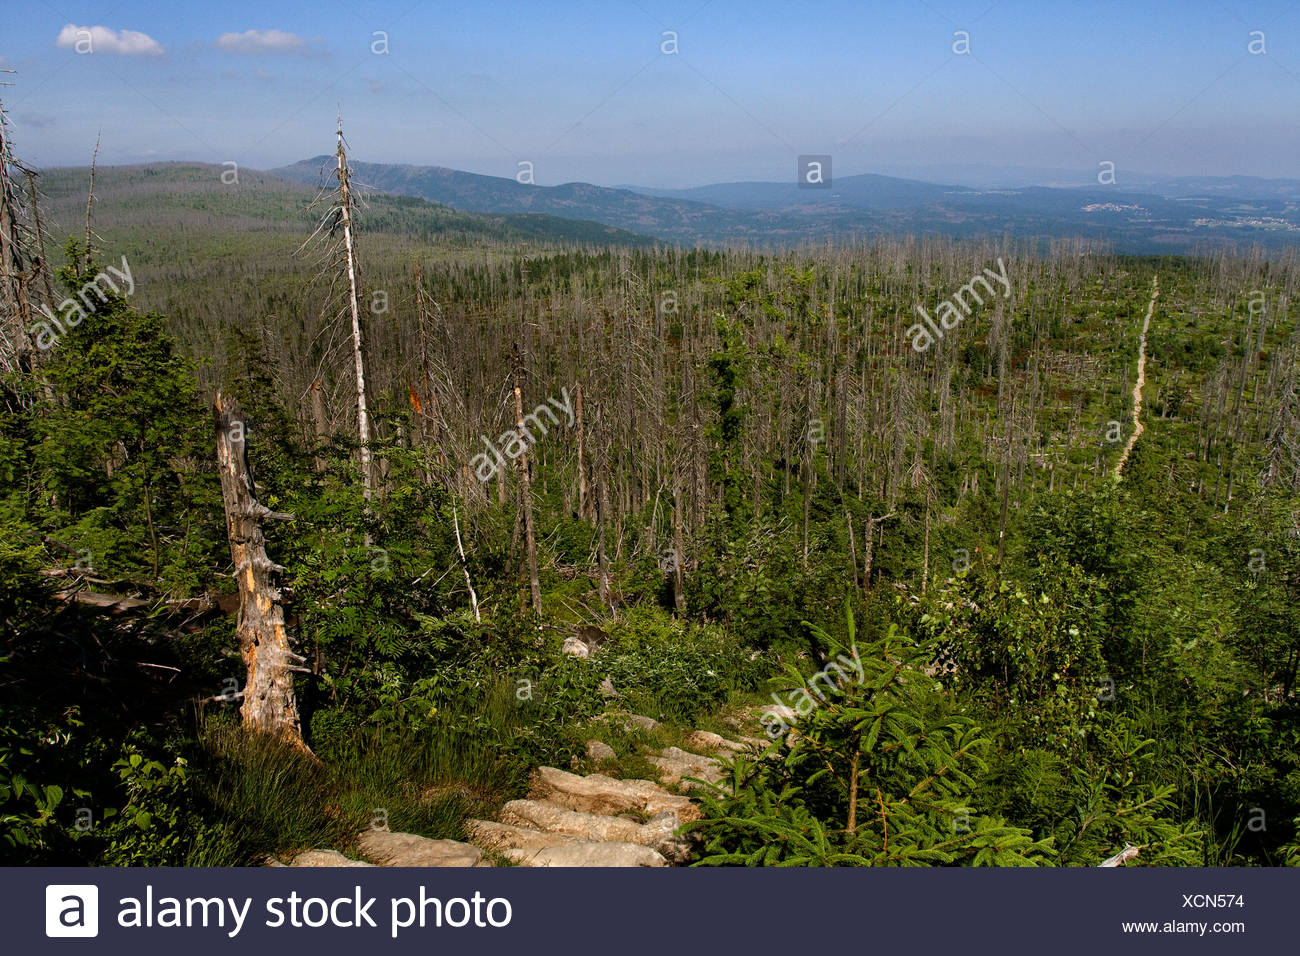 Norway spruce (Picea abies), forest dieback at Lusen in National Park Bavarian Forest, Germany, Bavaria, Bavarian Forest National Park Stock Photo